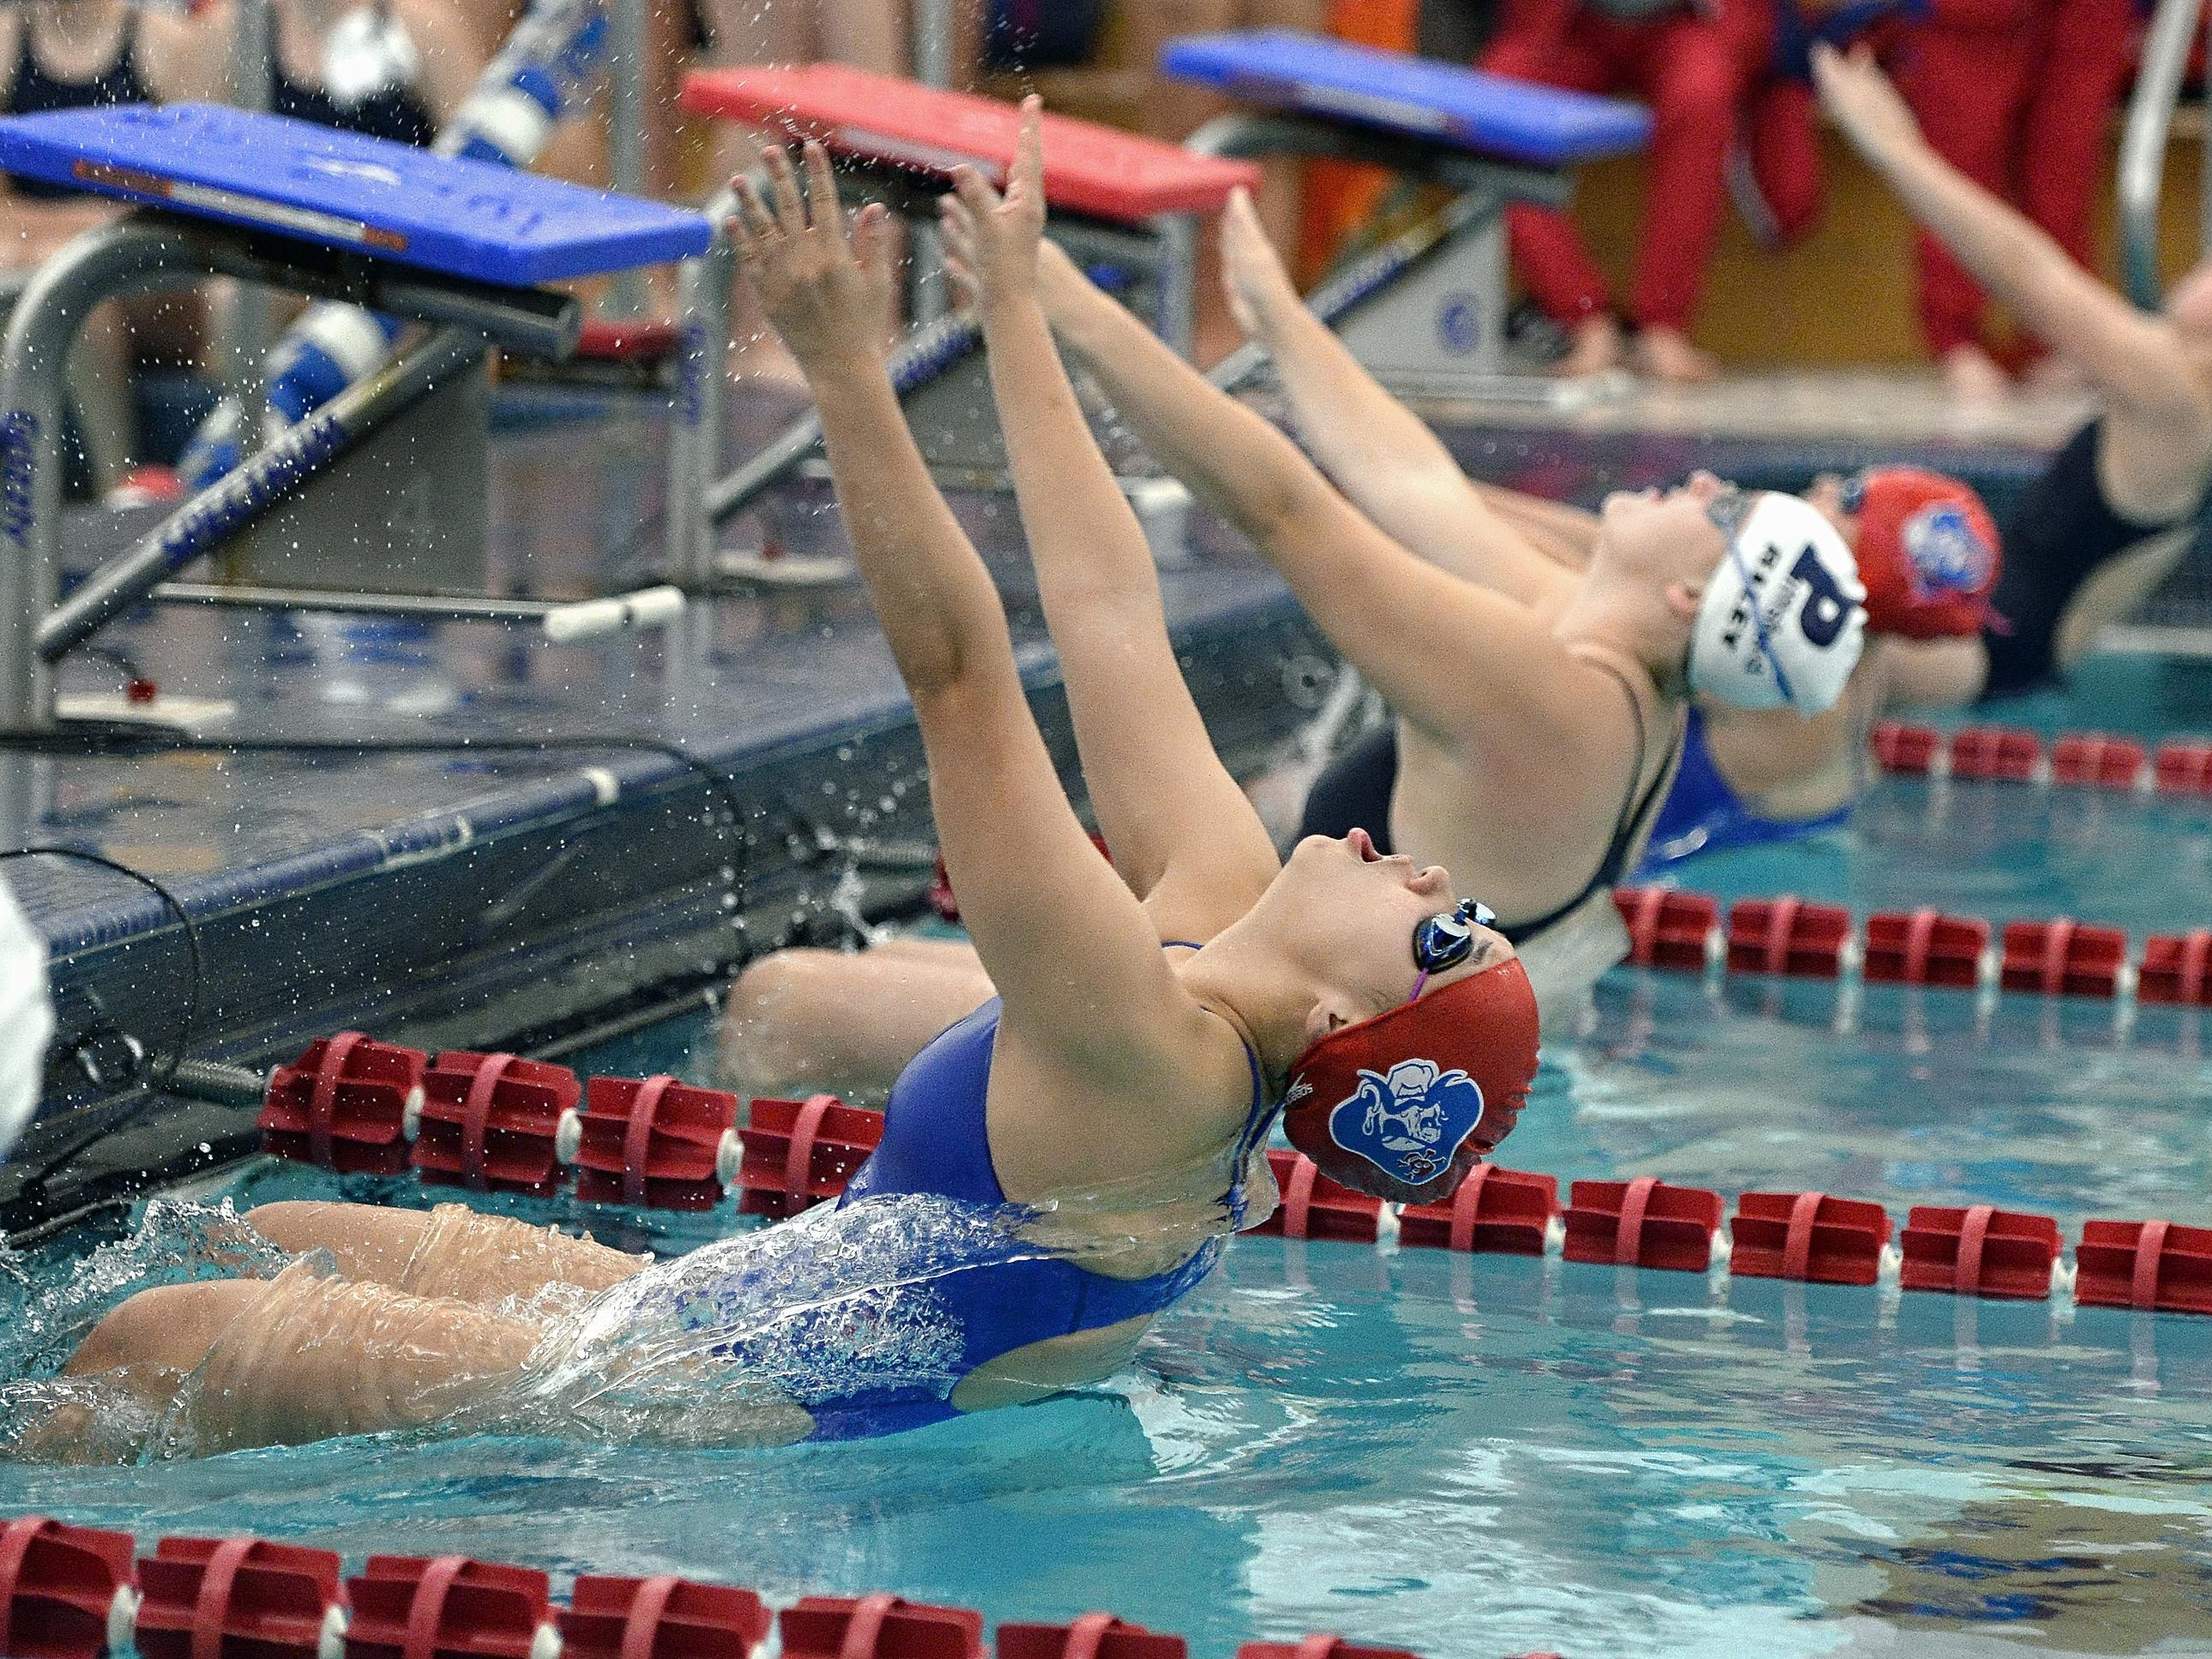 Fairport's Grace Chen, left, takes off from the blocks on her way to a win in the 100 yard backstroke during a meet against Pittsford held at Fairport High School on Tuesday, October 10, 2015.